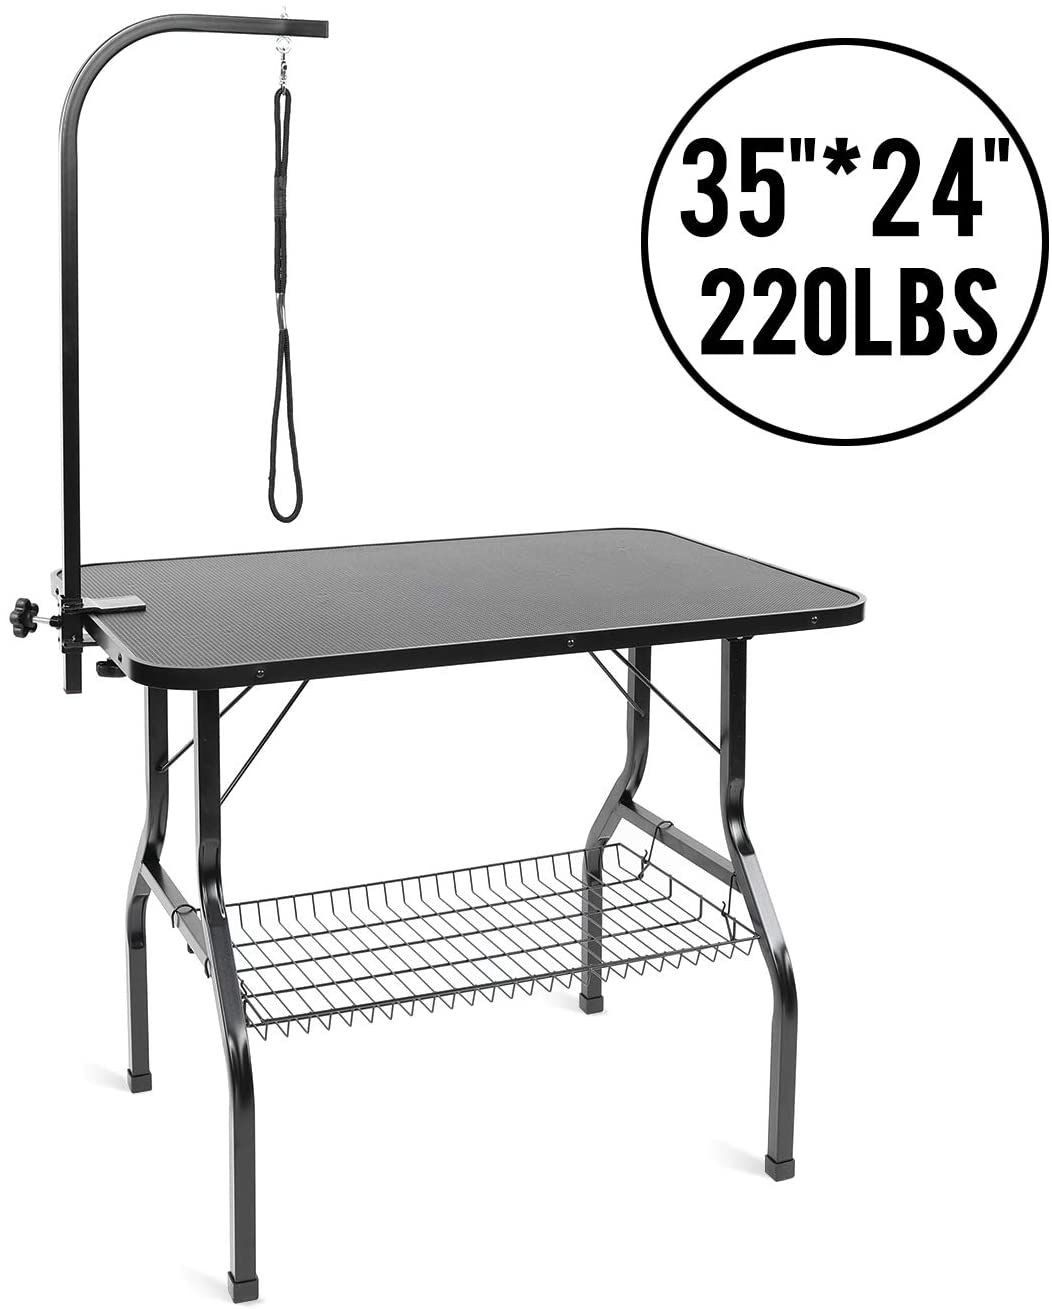 Lazy Buddy Dog Grooming Table Pet Grooming Table Heavy Duty Grooming Table For Max Capacity 22 In 2020 Dog Grooming Pet Grooming Large Dogs